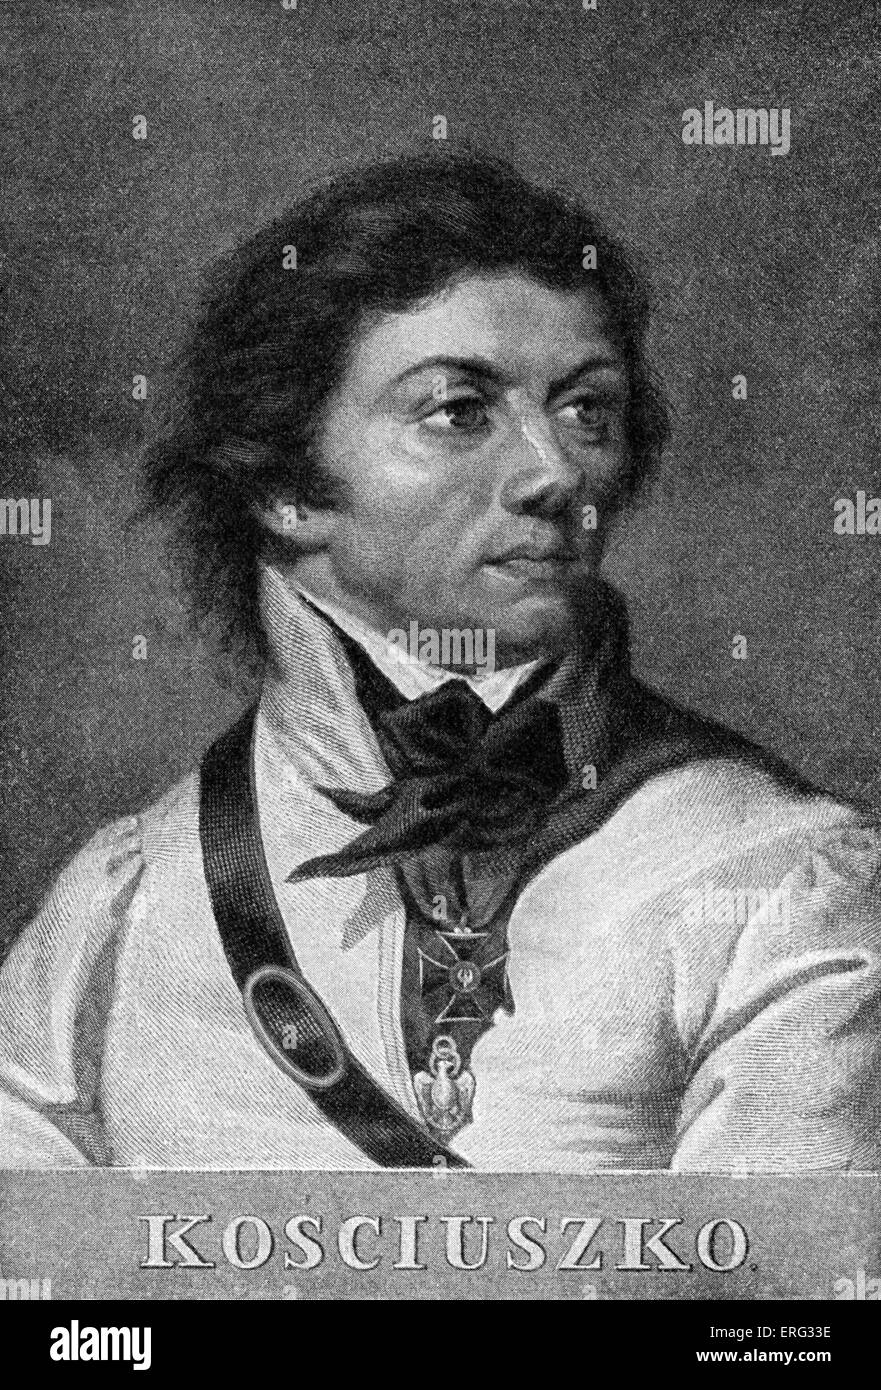 Tadeusz Kosciuszko, Polish military commander and national hero.  4 February 1746 - 15 October 1817. - Stock Image